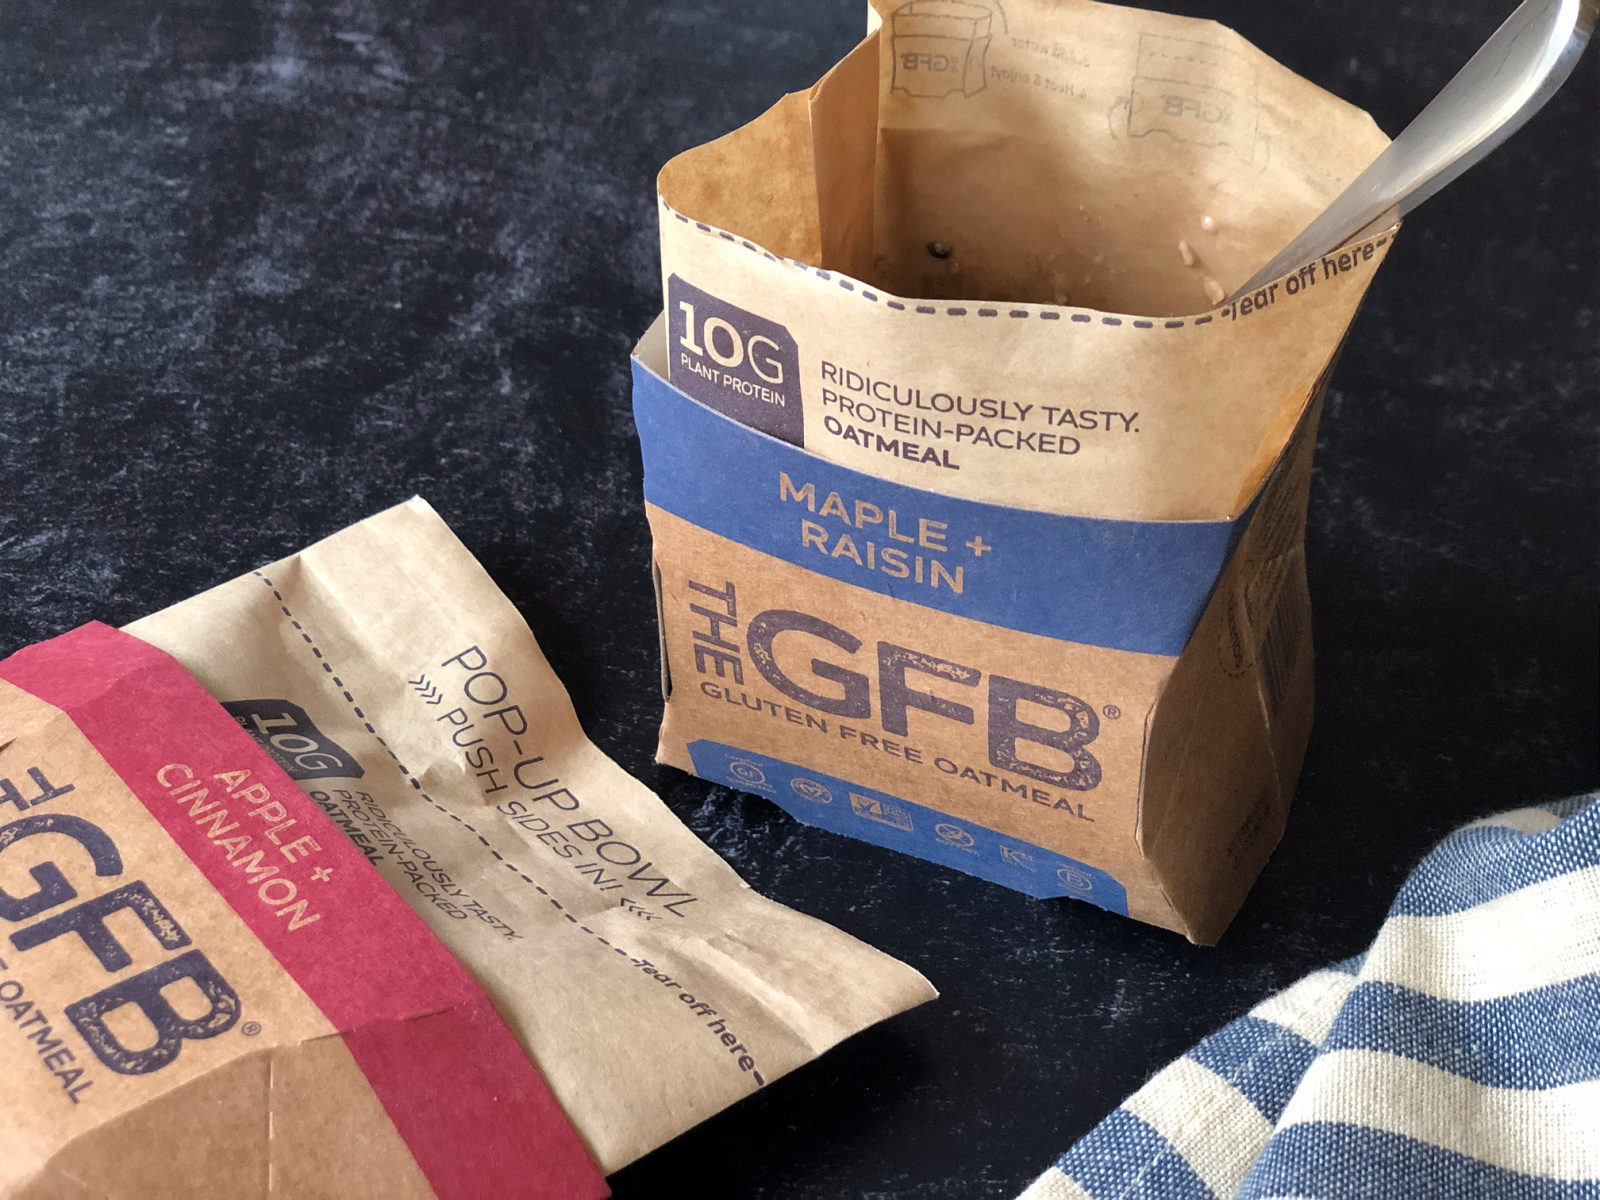 The GFB Gluten Free Oatmeal Is Just 75¢ At Publix on I Heart Publix